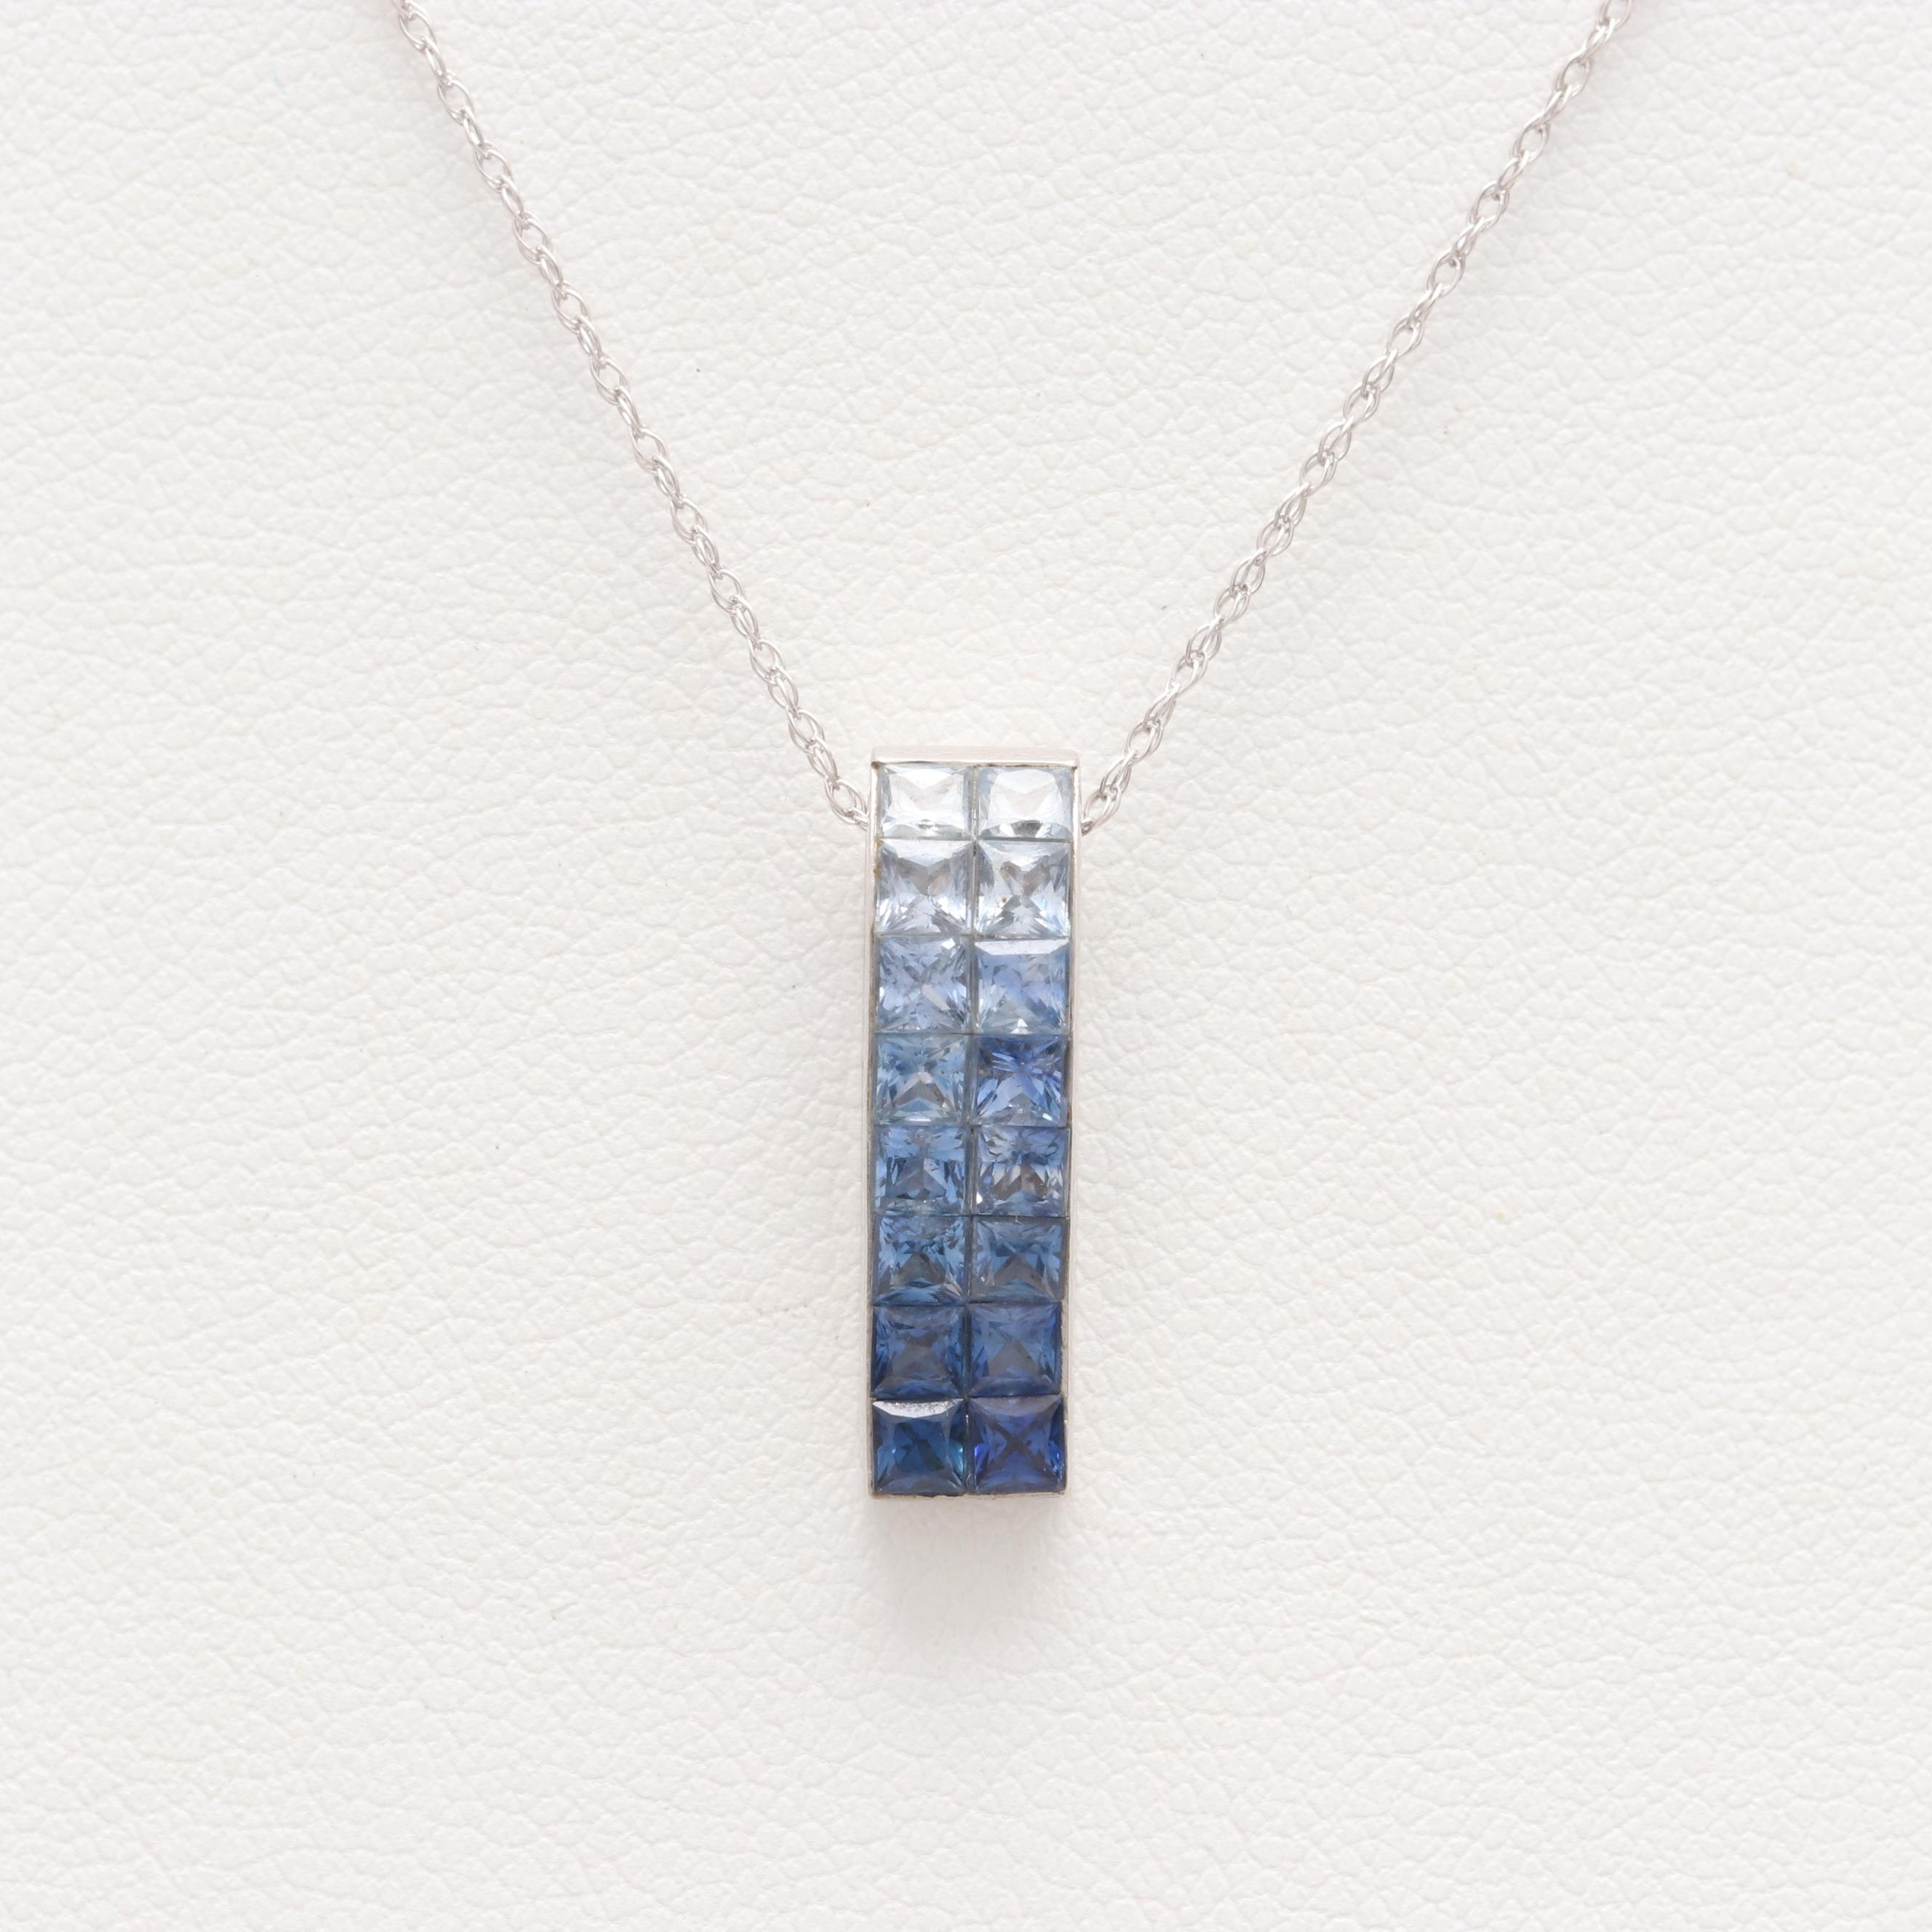 18K White Gold Blue Sapphire Pendant on 14K Gold Chain Necklace